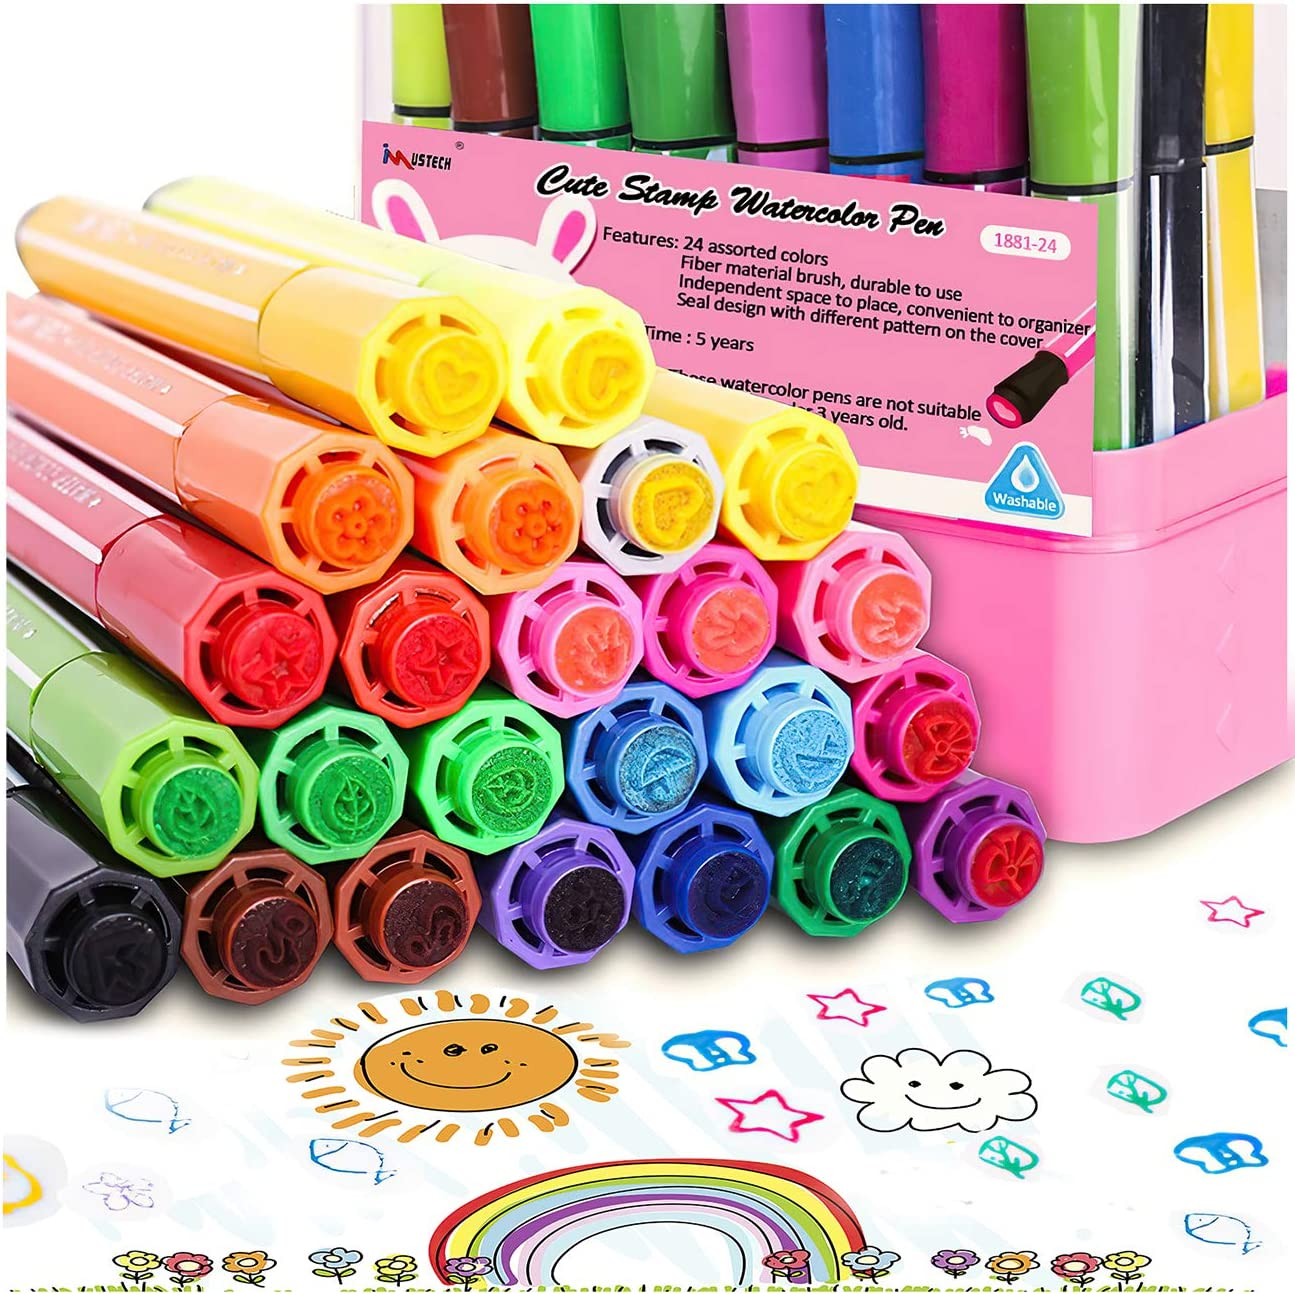 Amazon Com Watercolor Markers Paint Pens Markers Stamp Markers For Kids Non Toxic Stamp Markers Pens Set With Storage Case 24 Colors Coloring Markers For Toddlers Preschoolers Office Products